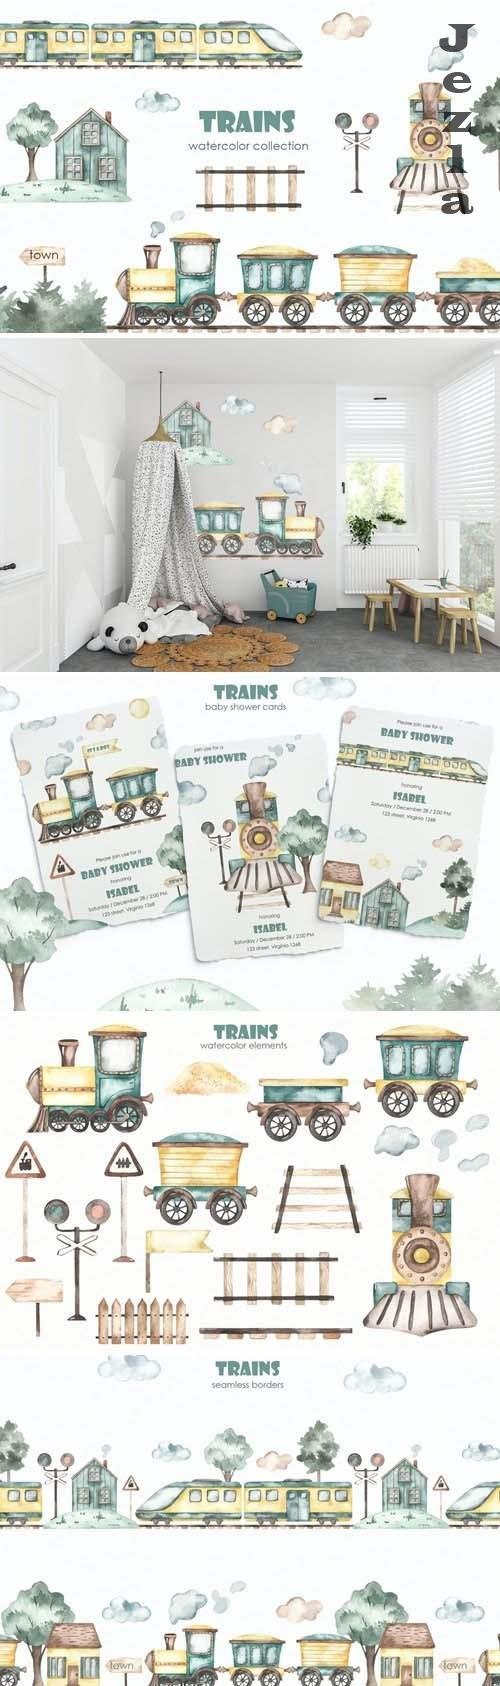 Trains watercolor collection - 5699816